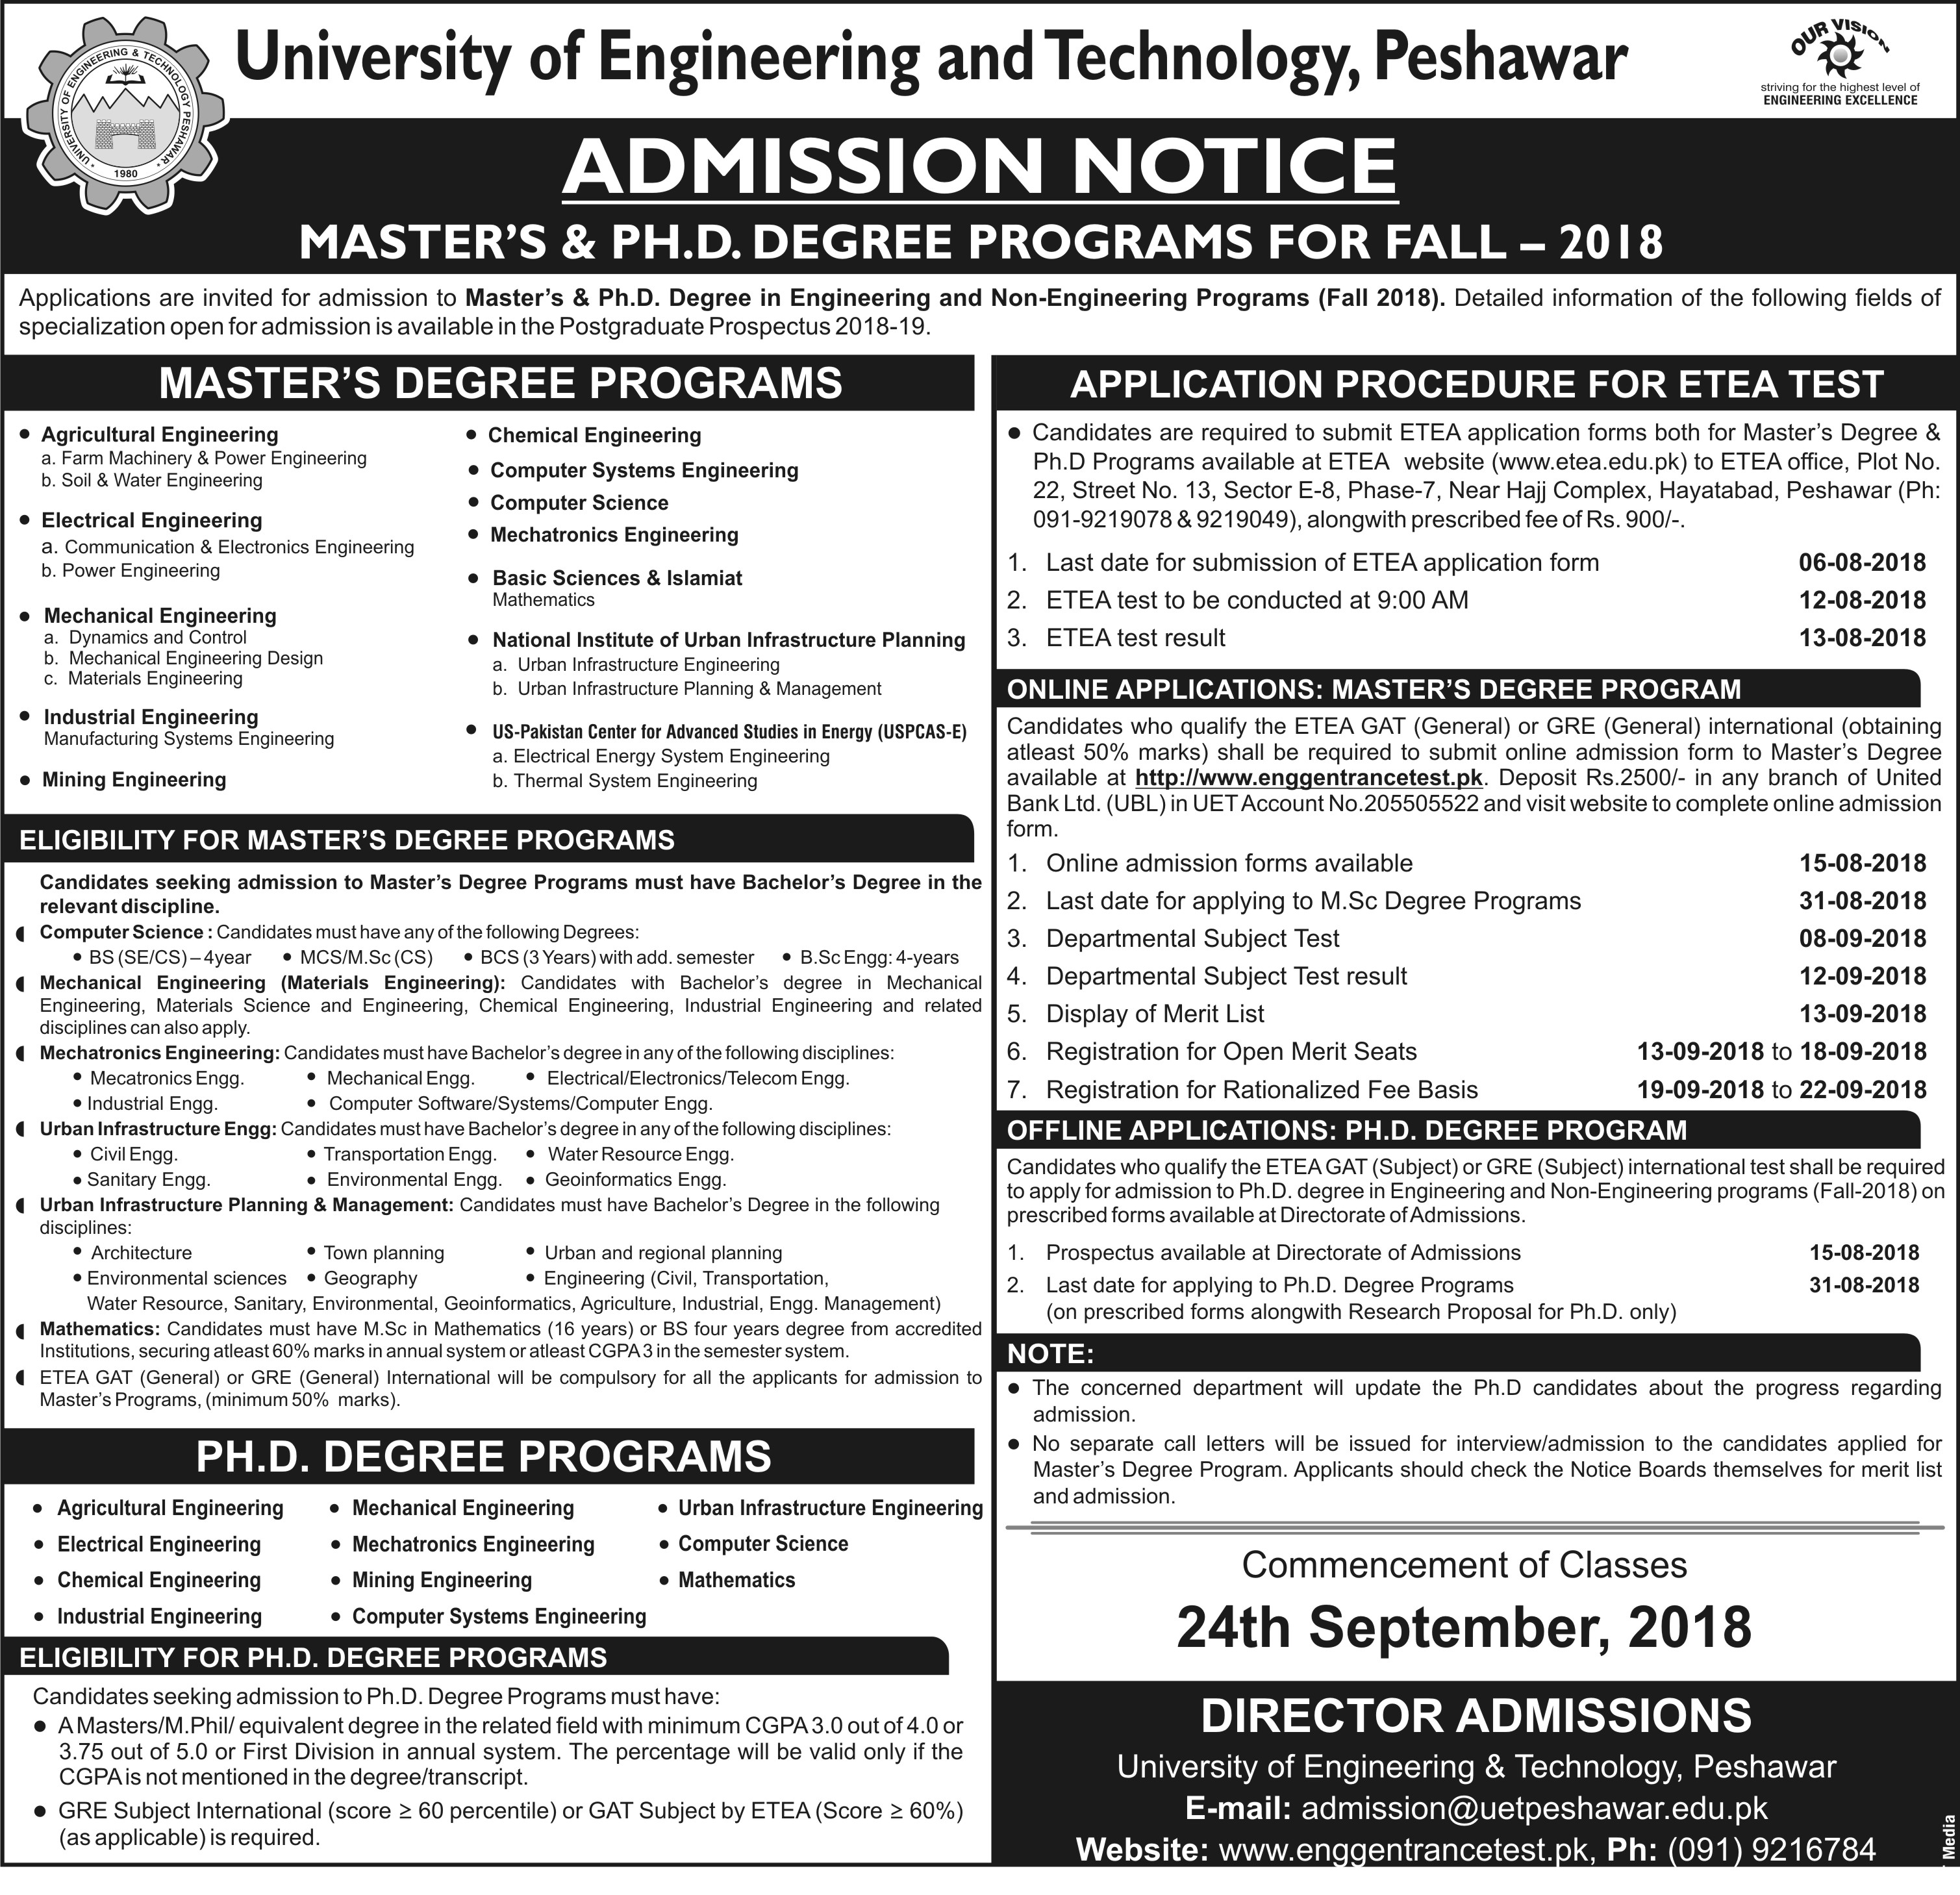 UET Peshawar Masters, PhD Admission 2018 Form, Entry Test Date